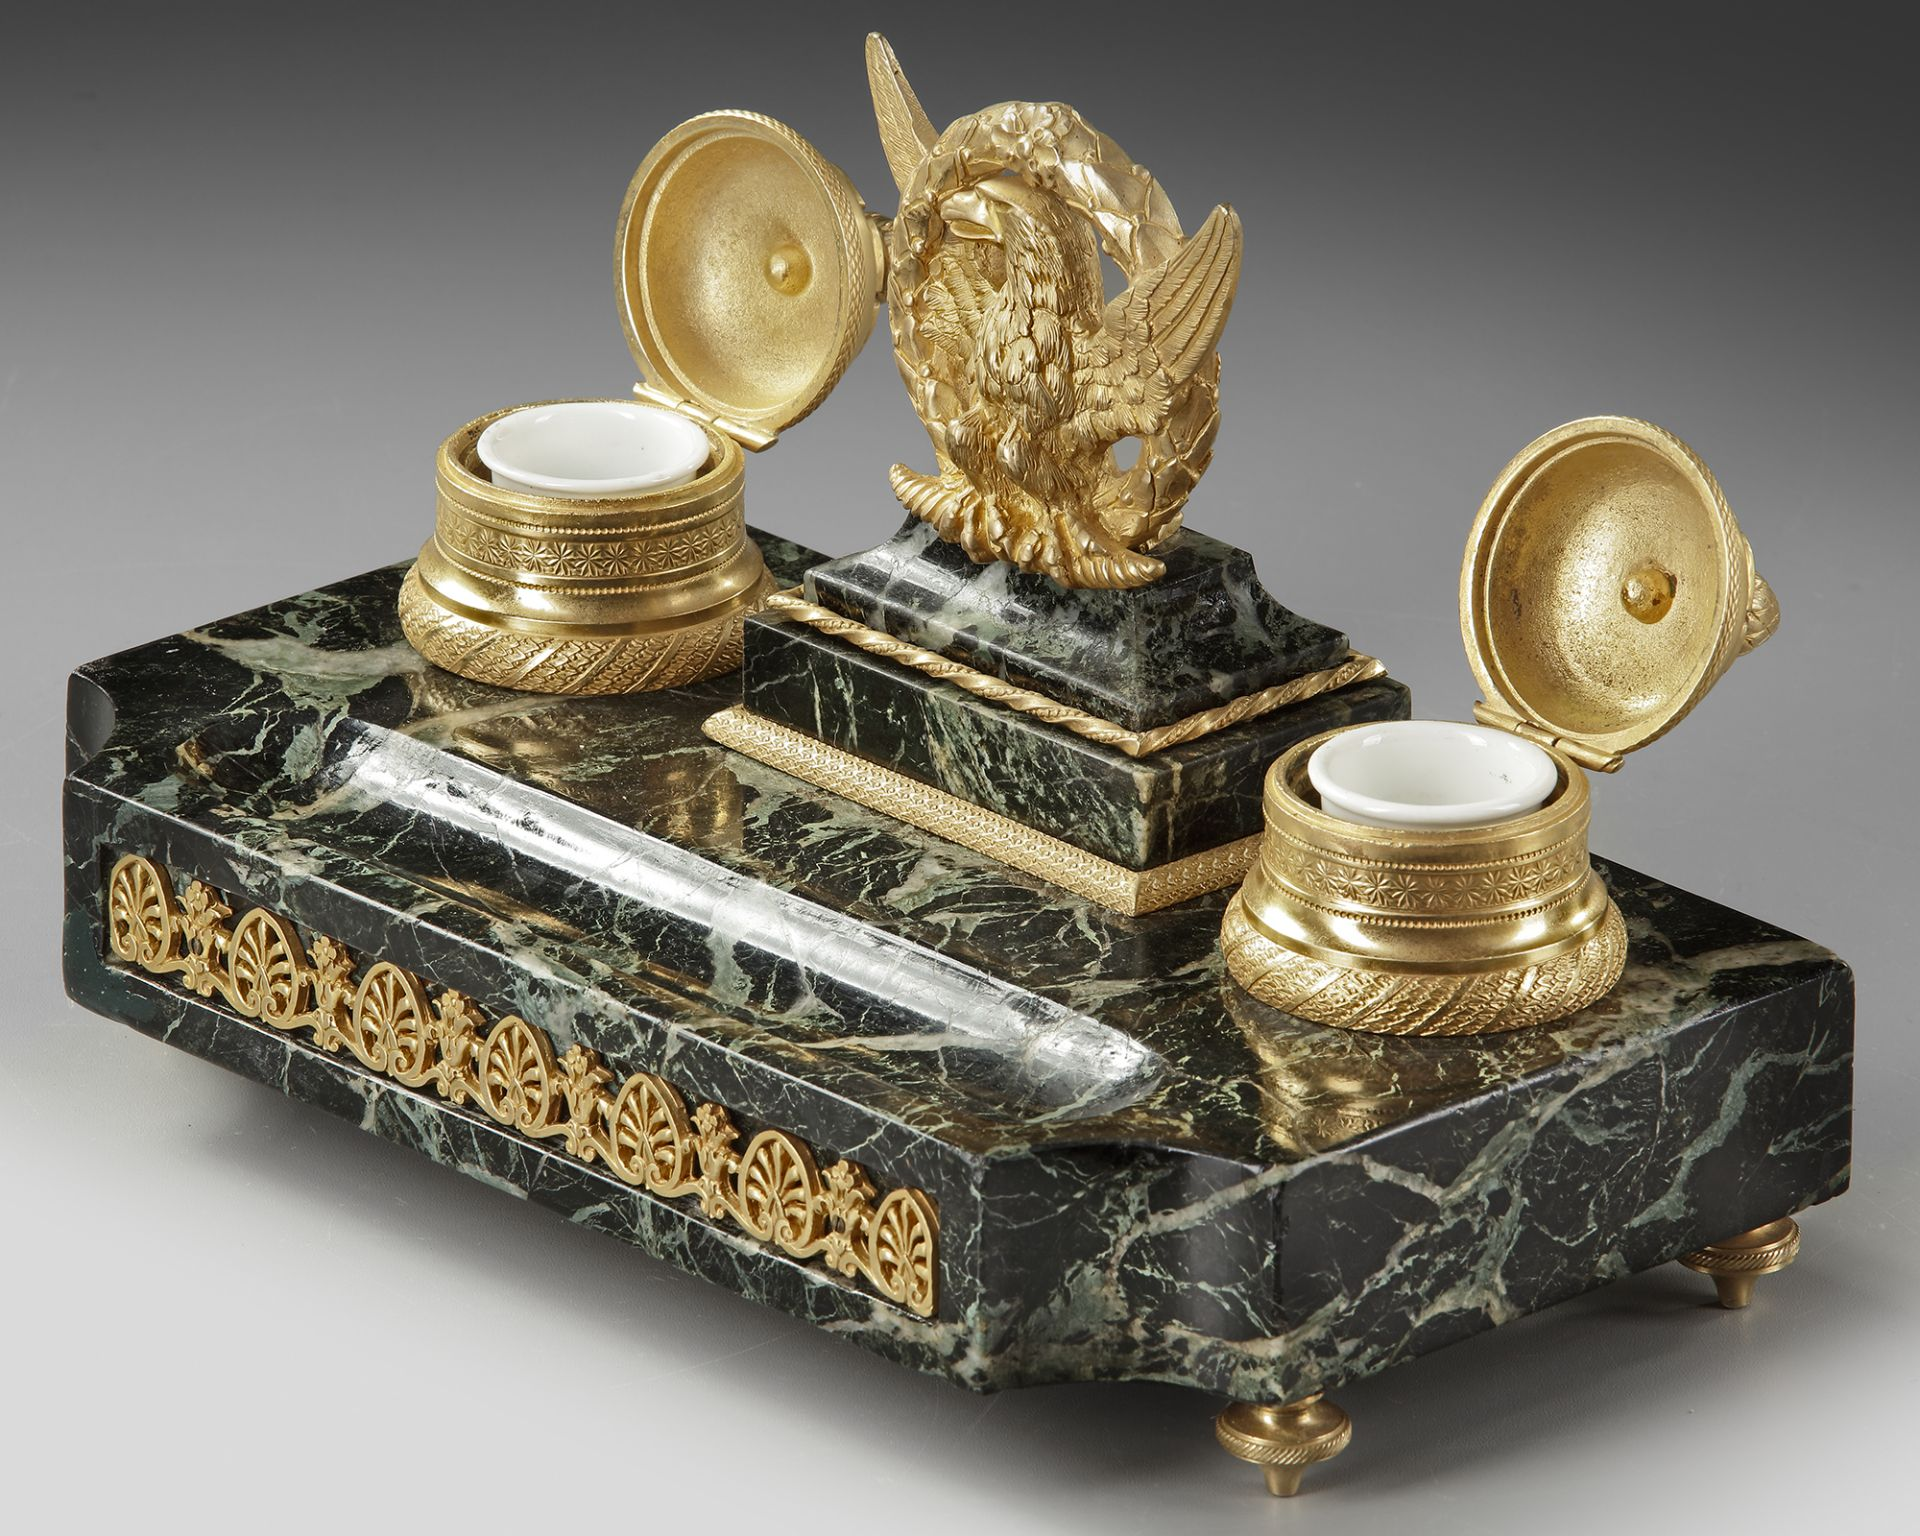 A FRENCH 'EMPIRE STYLE' INKWELL SET, LATE 19TH CENTURY - Image 3 of 3